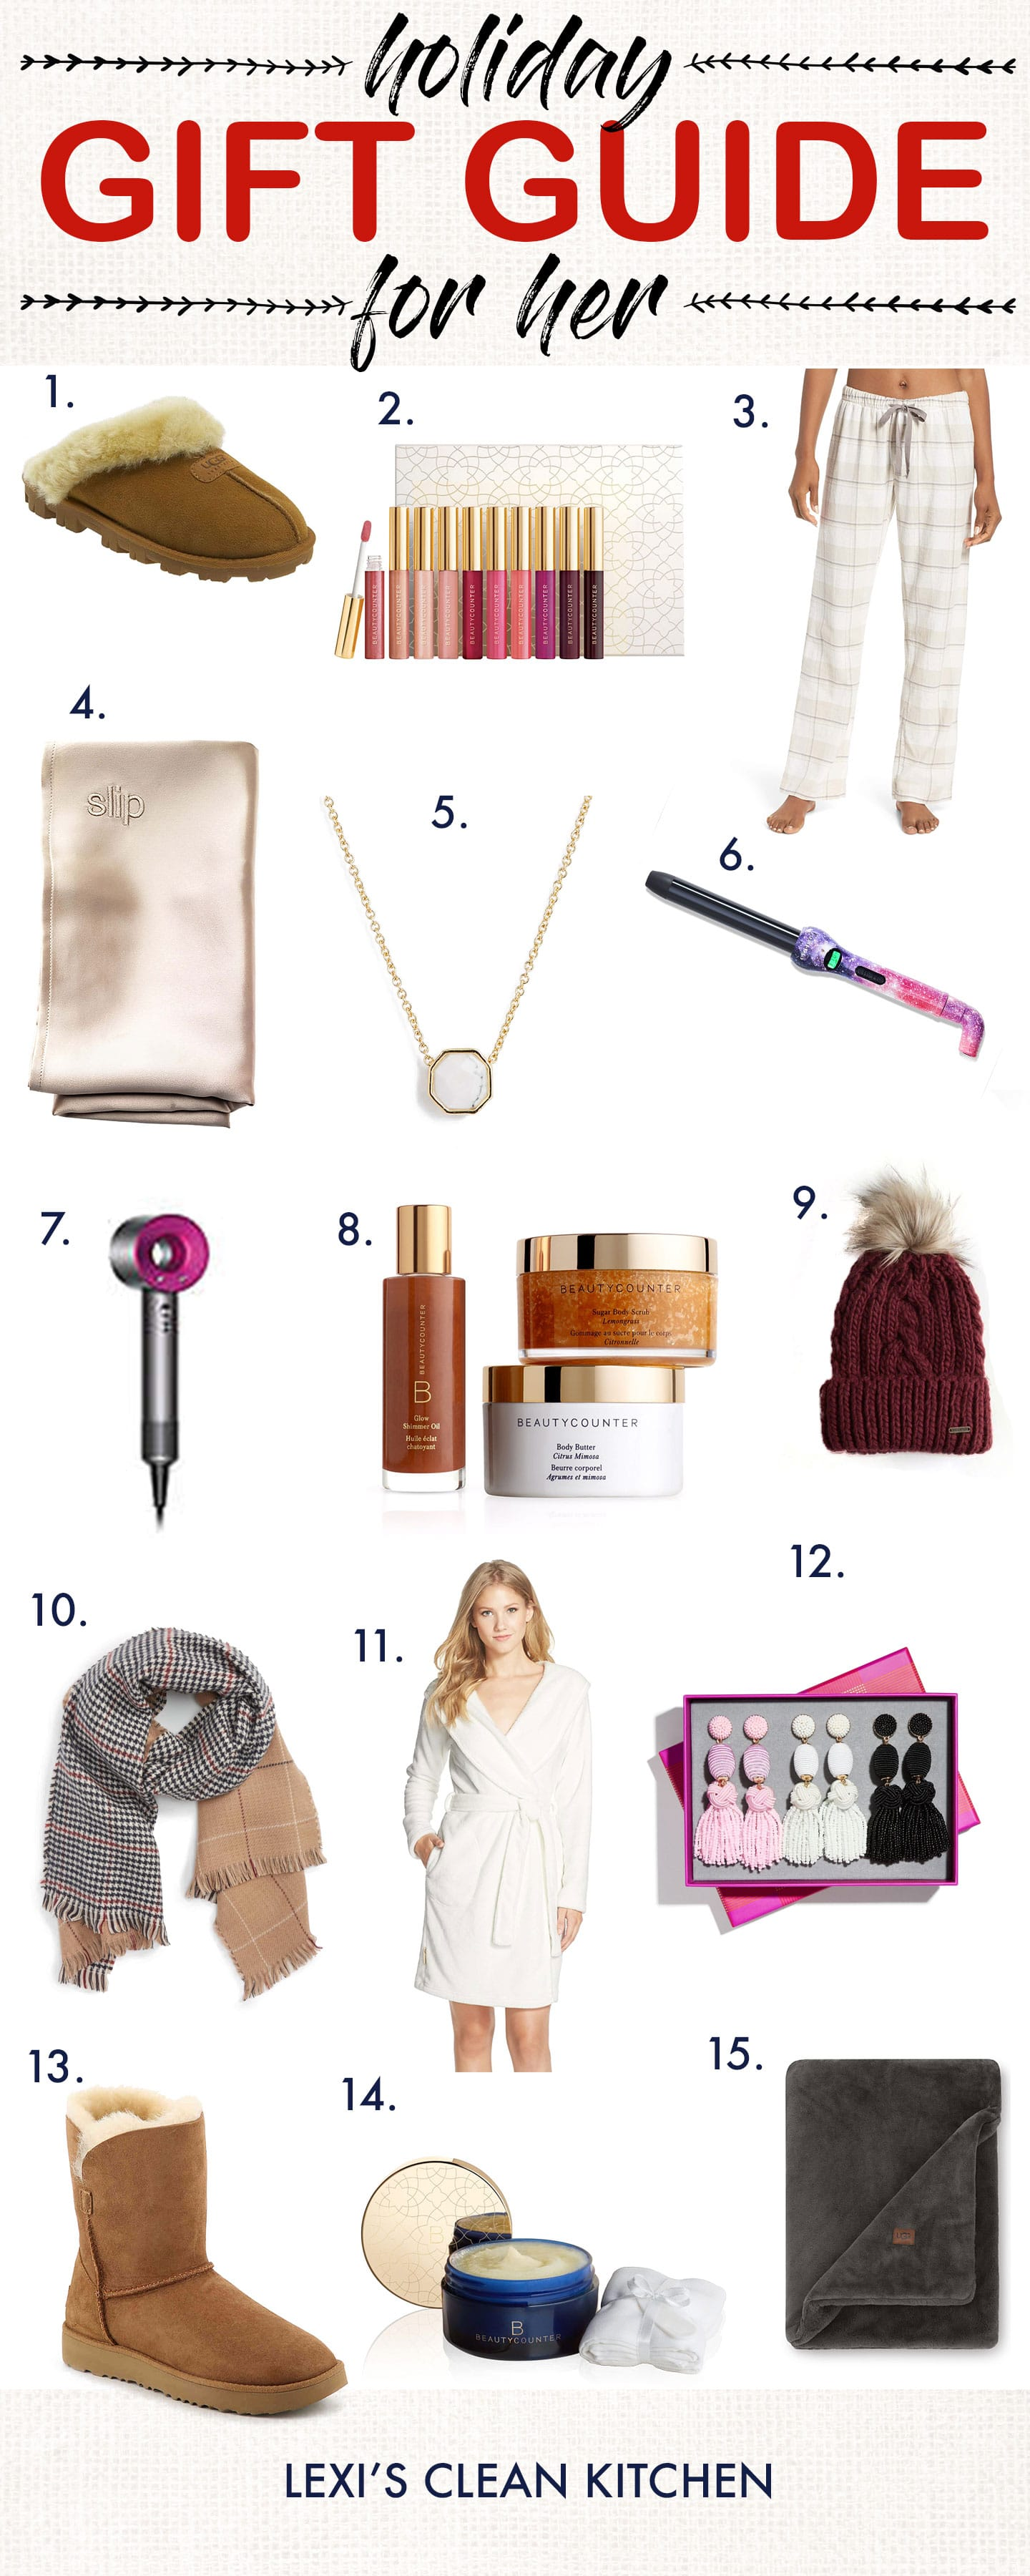 Holiday Gift Guide FOR HER 2018